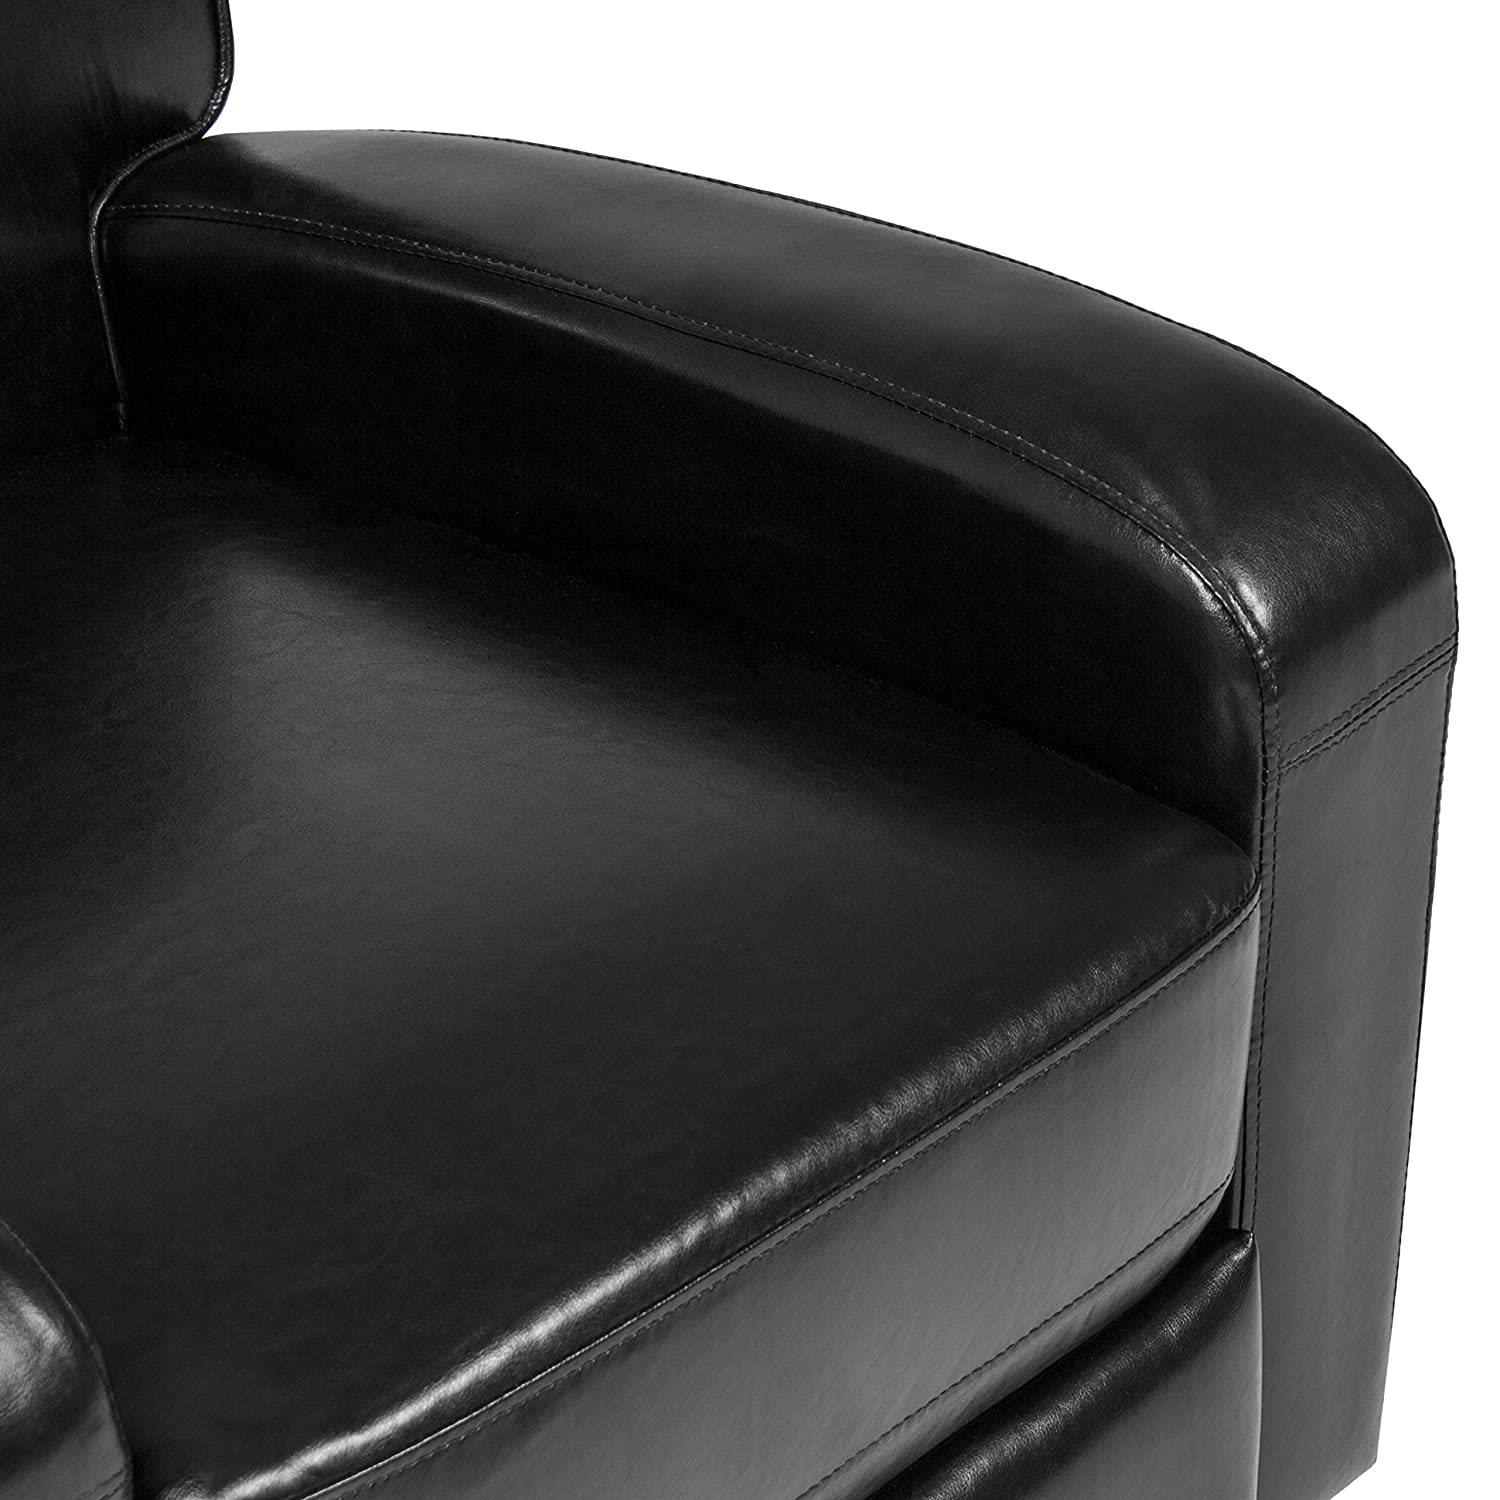 Amazon.com: Best Choice Products Padded PU Leather Home Theater Recliner  Chair: Home U0026 Kitchen